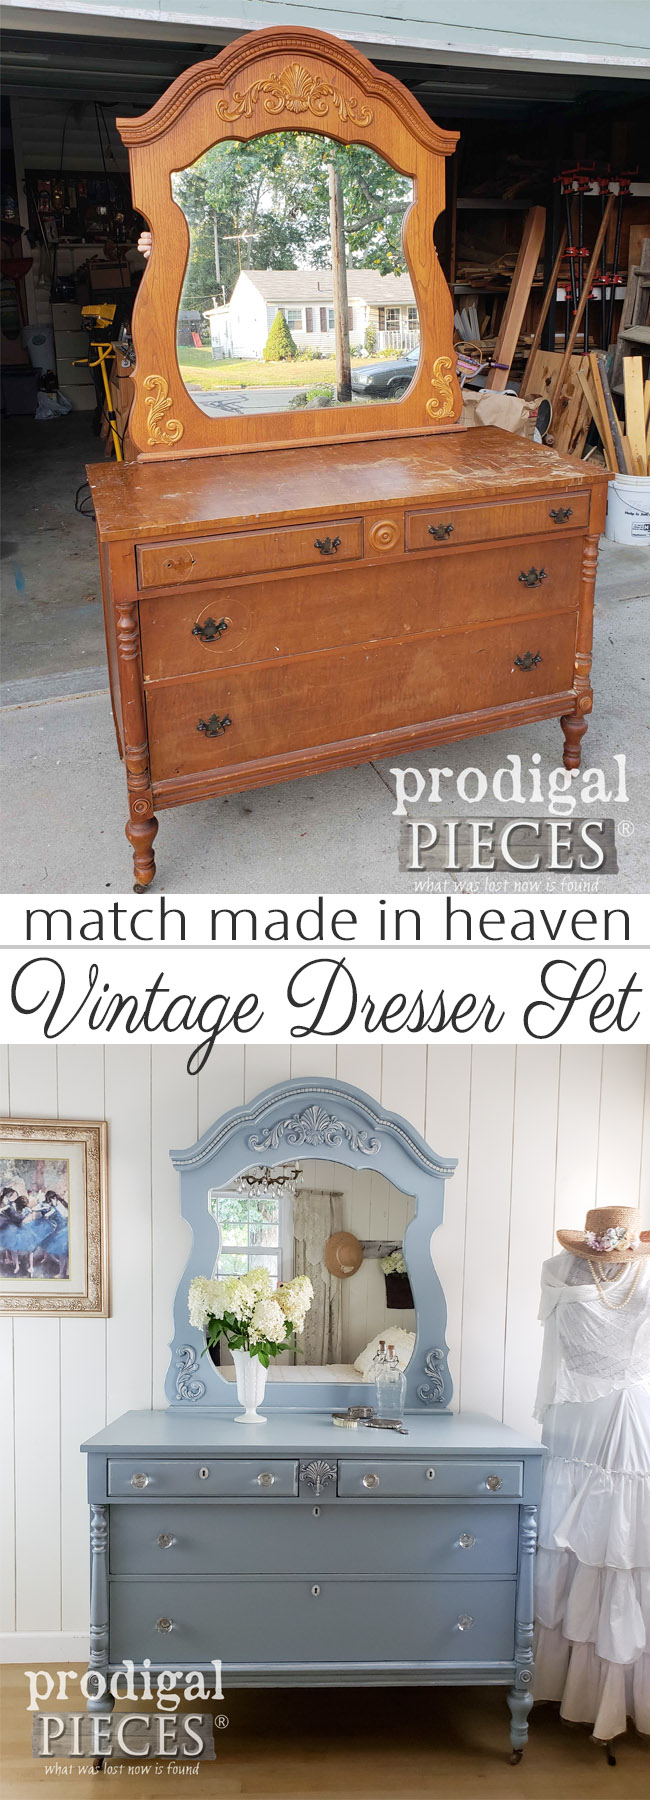 Fantastic! This cast-off mirror is married to this antique dresser for a lovely upcycled dresser set makeover by Larissa of Prodigal Pieces | See the details at prodigalpieces.com